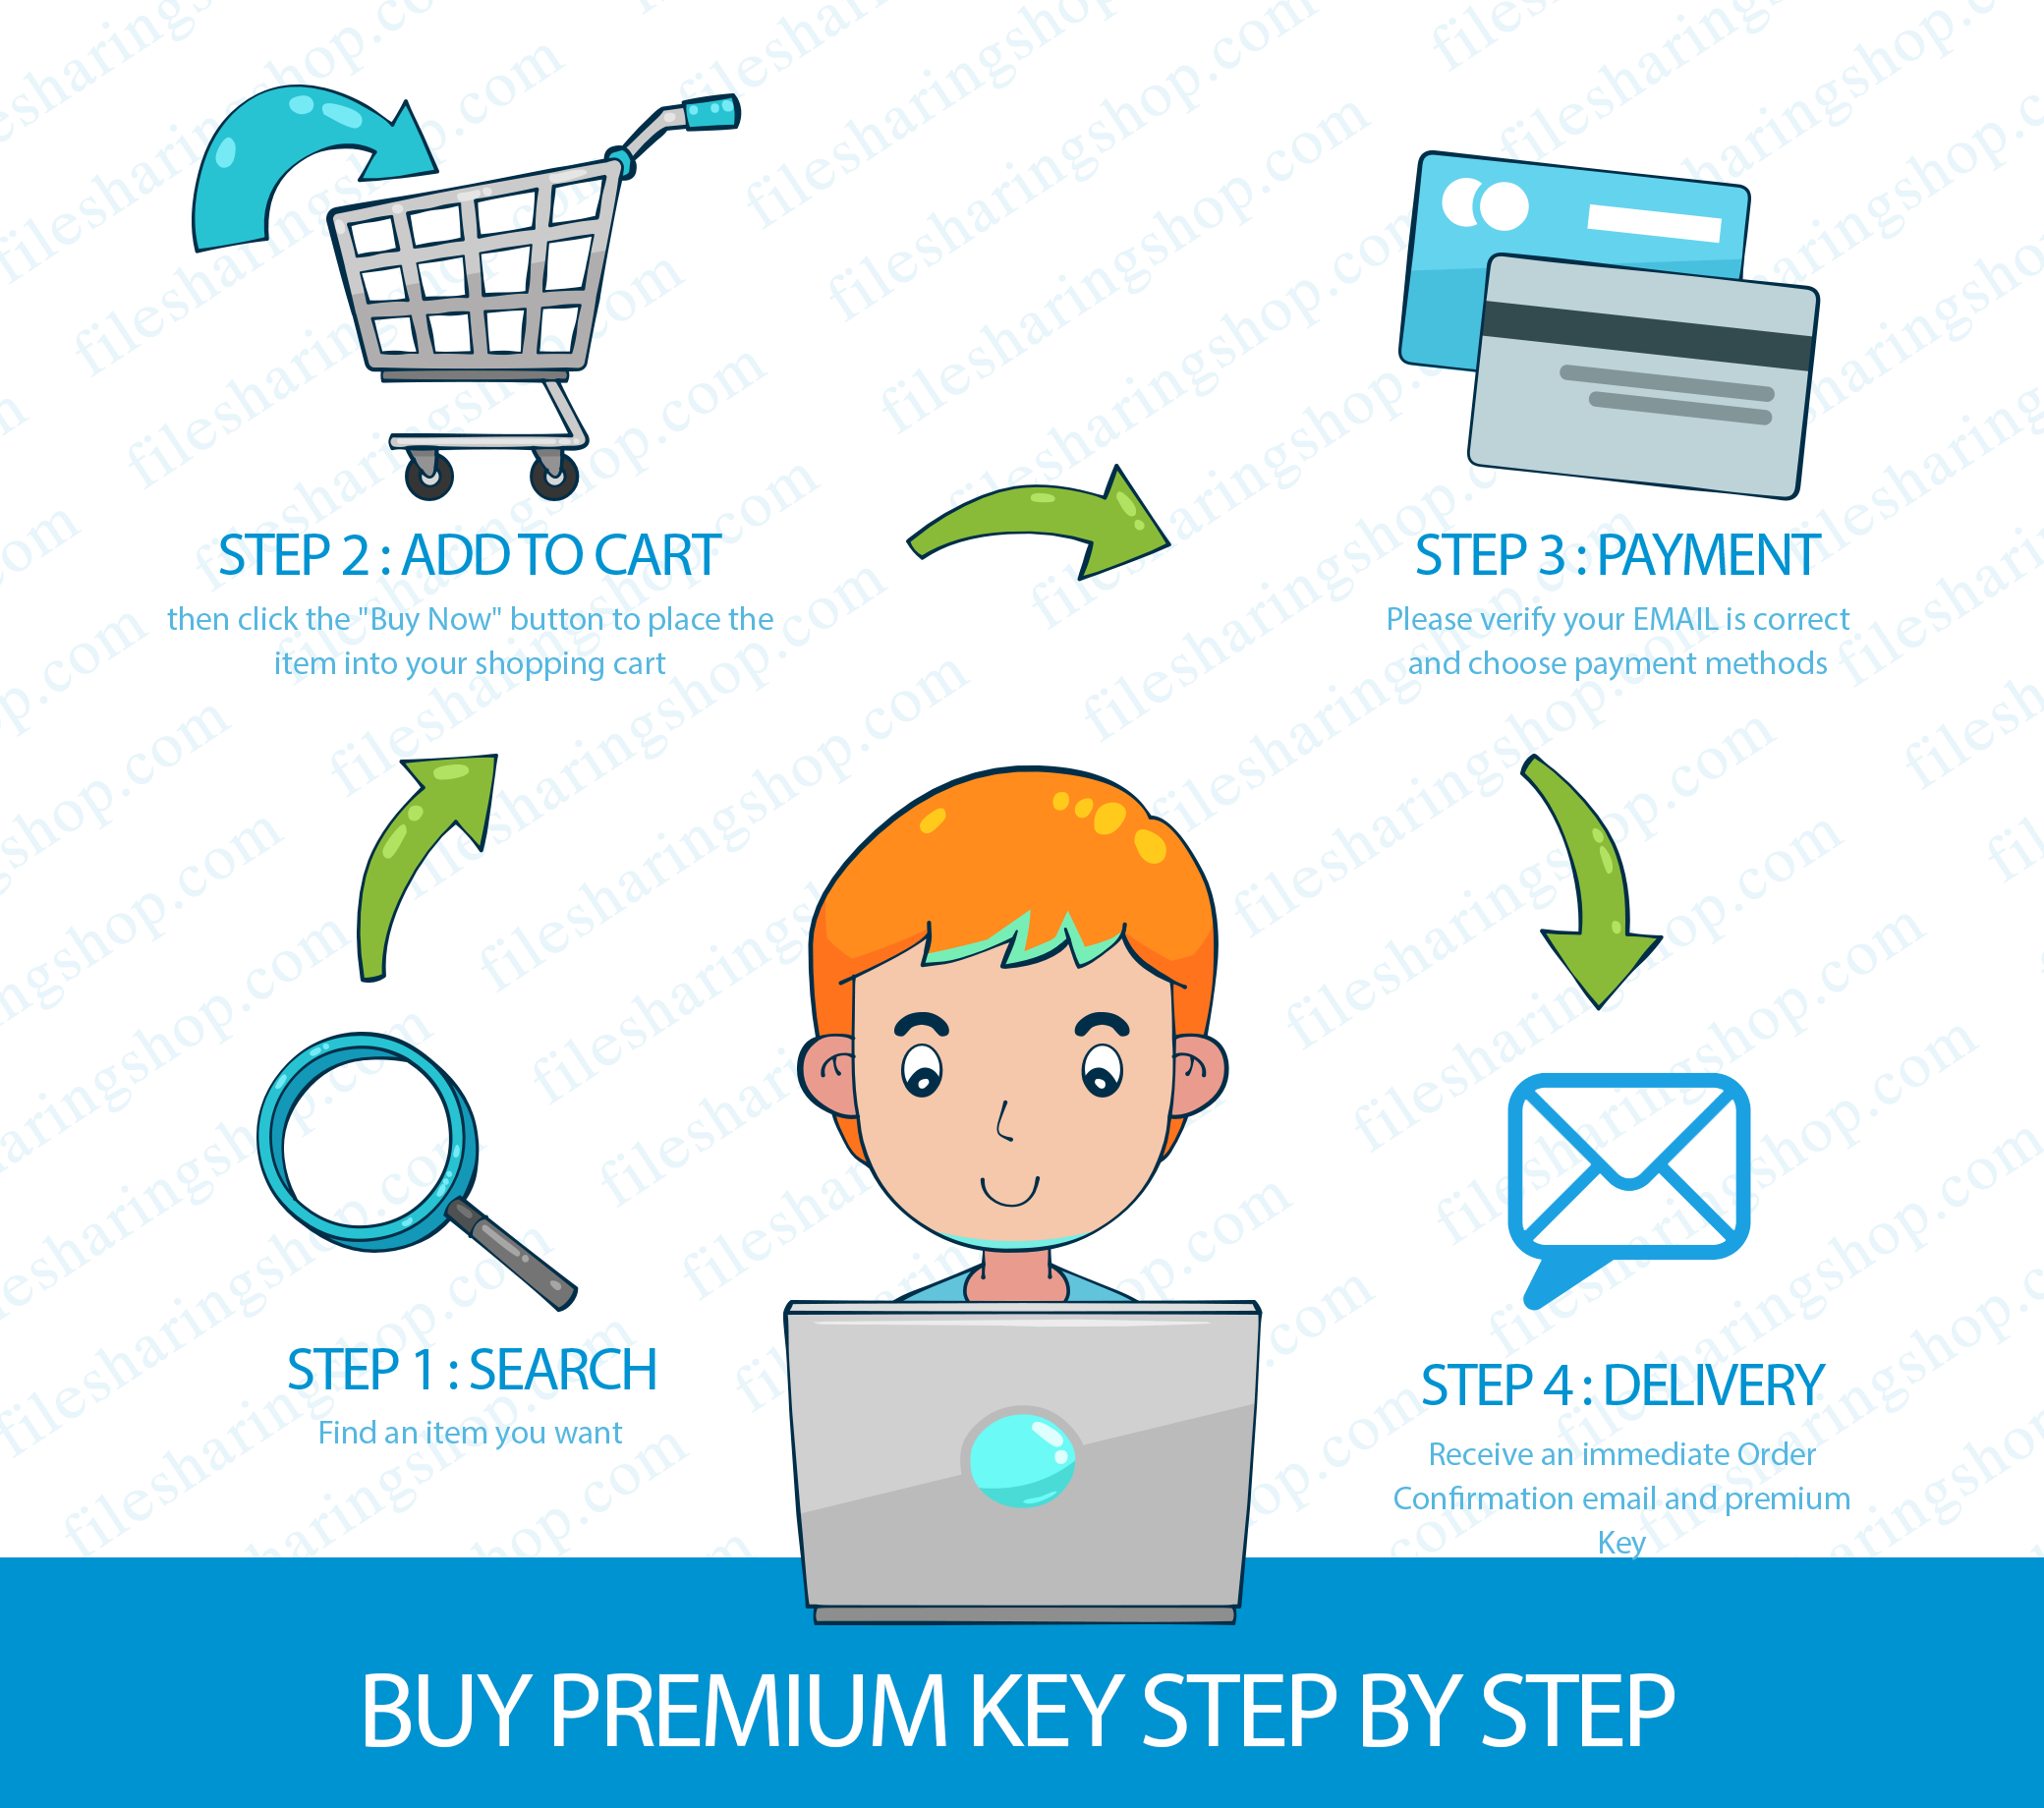 HOW TO BUY XUBSTER PREMIUM